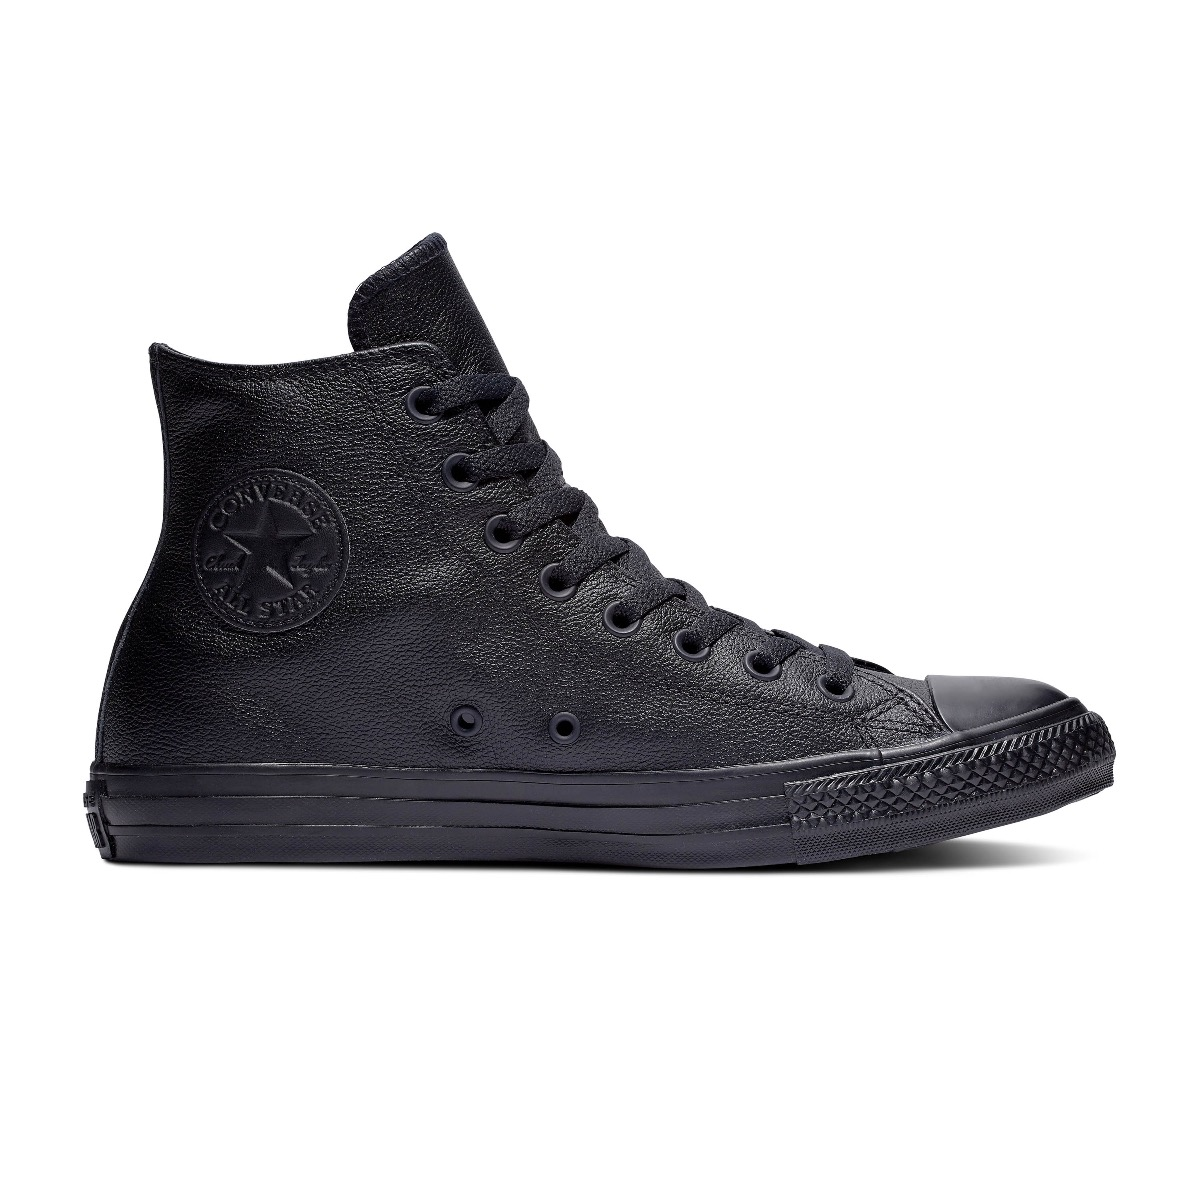 Converse All Stars Leather Hoog 135251C Zwart-37 maat 37